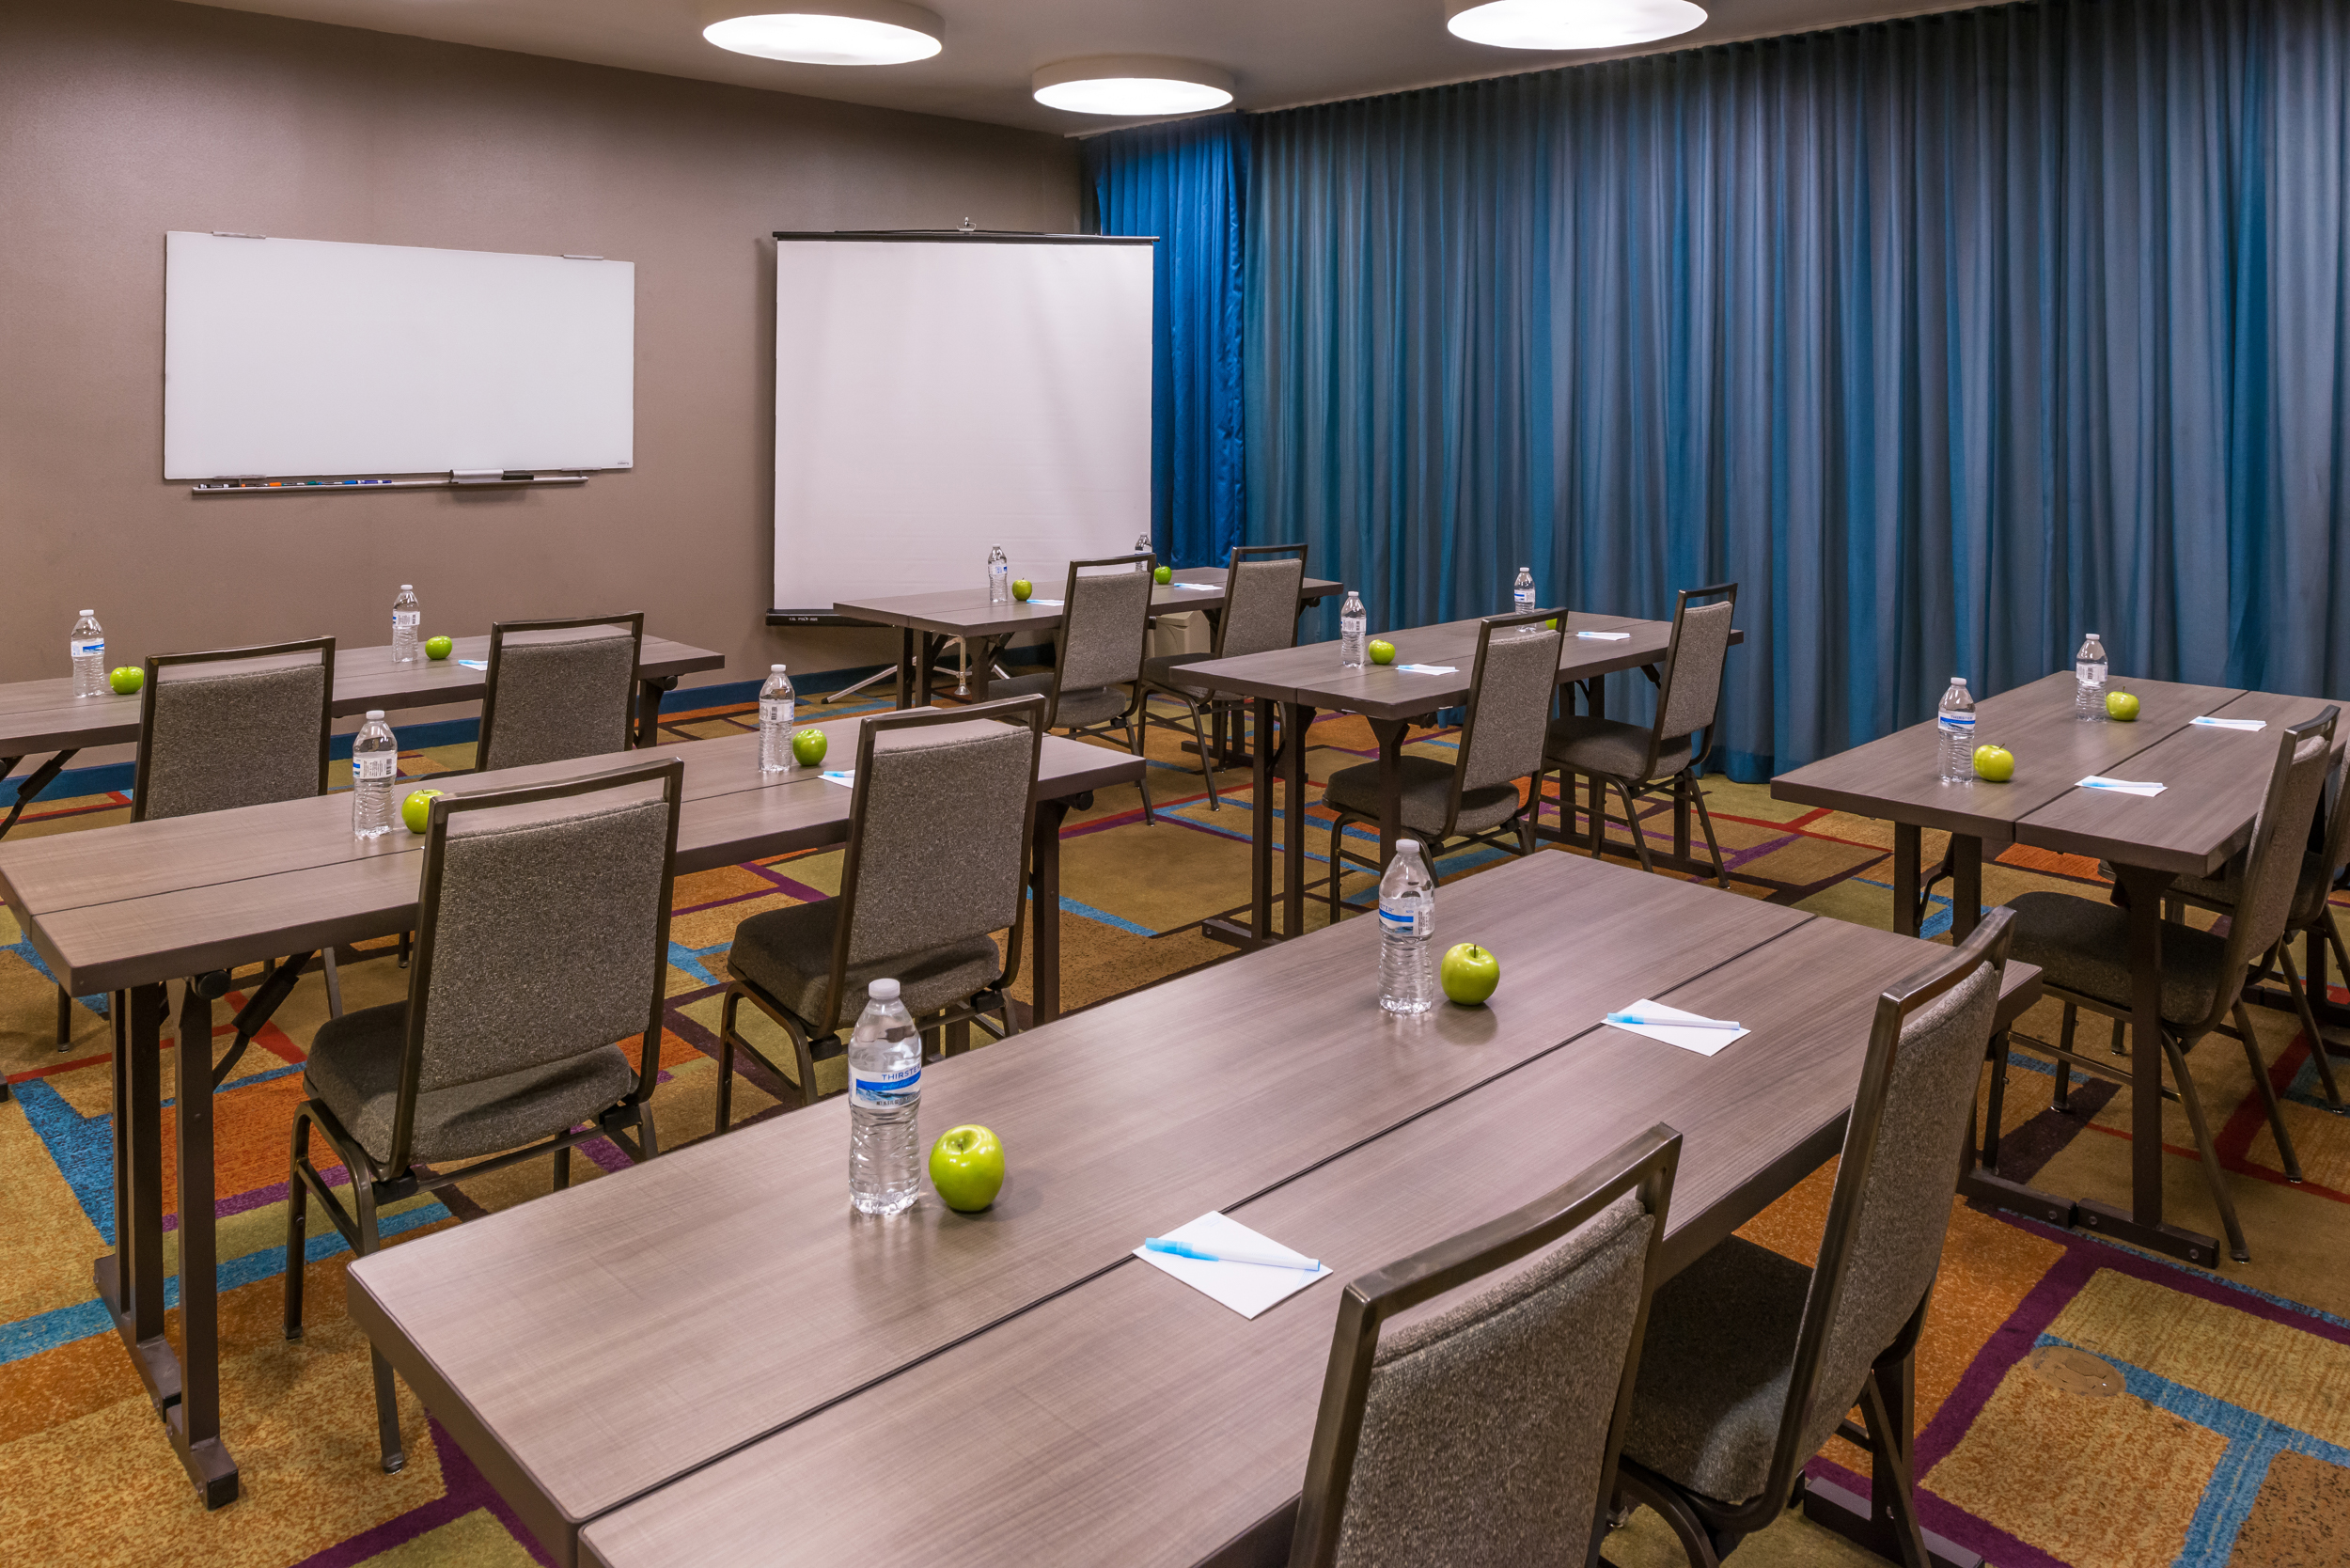 https://www.hotelsbyday.com/_data/default-hotel_image/4/21469/fis-lasfi-meetingroom1-small.jpg